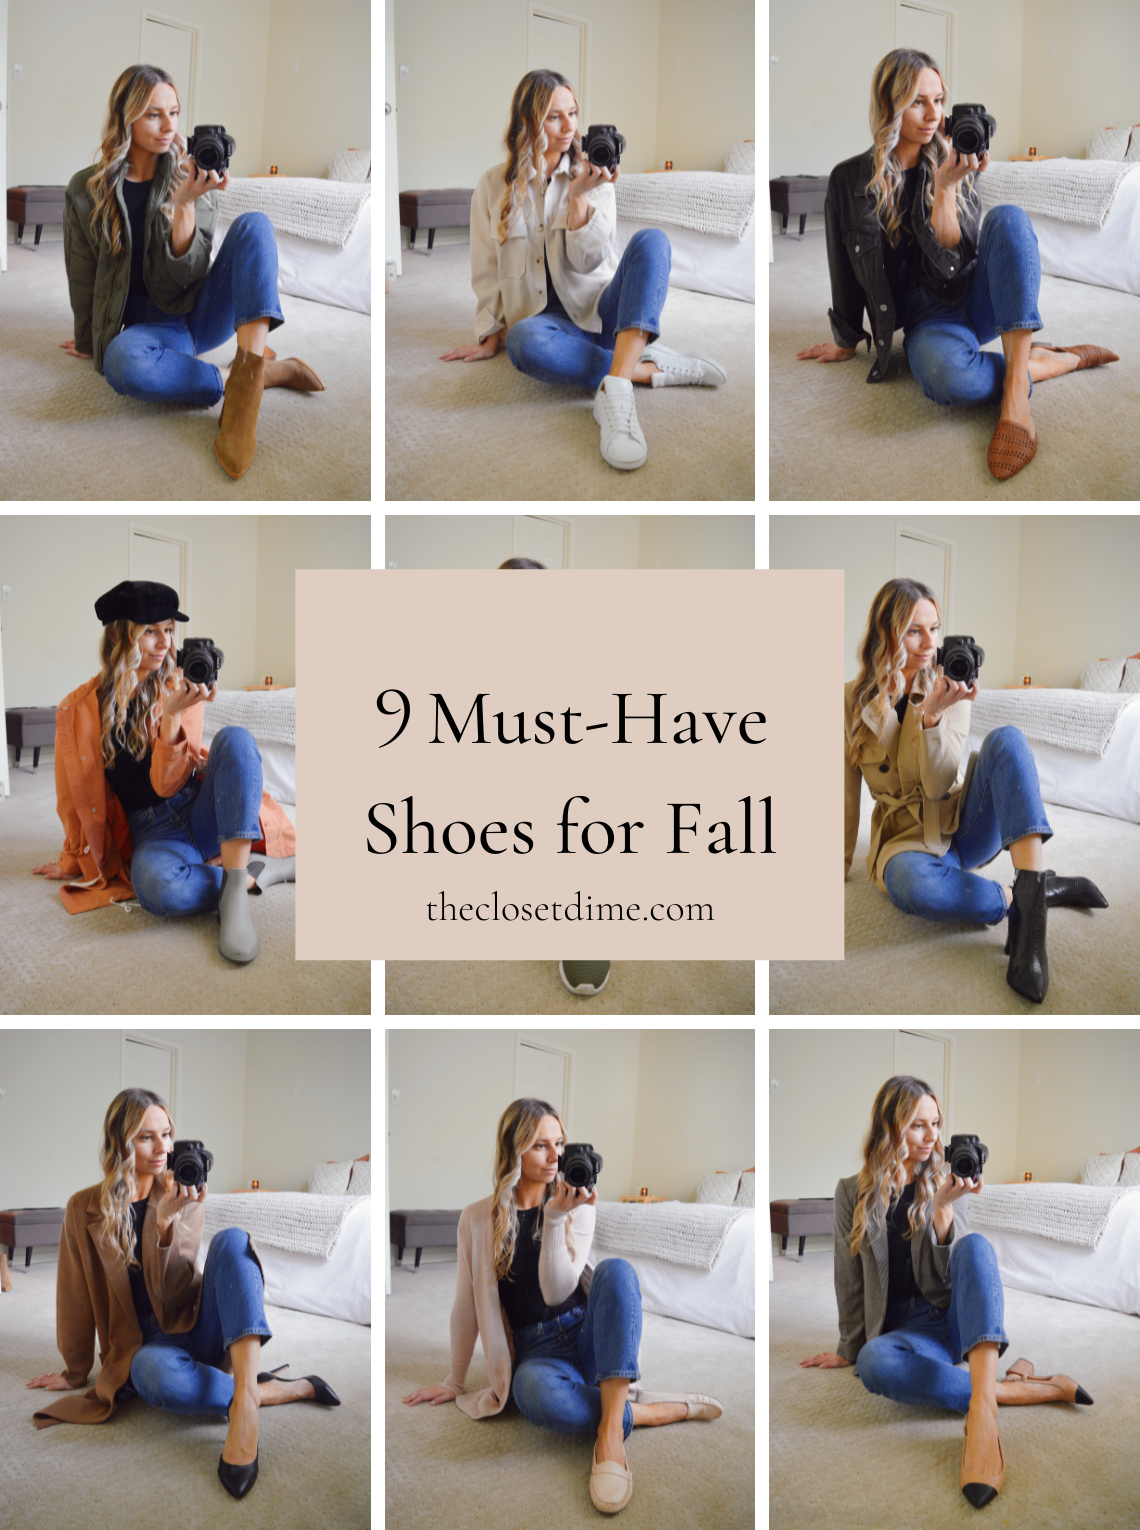 9-must-have-shoes-for-fall